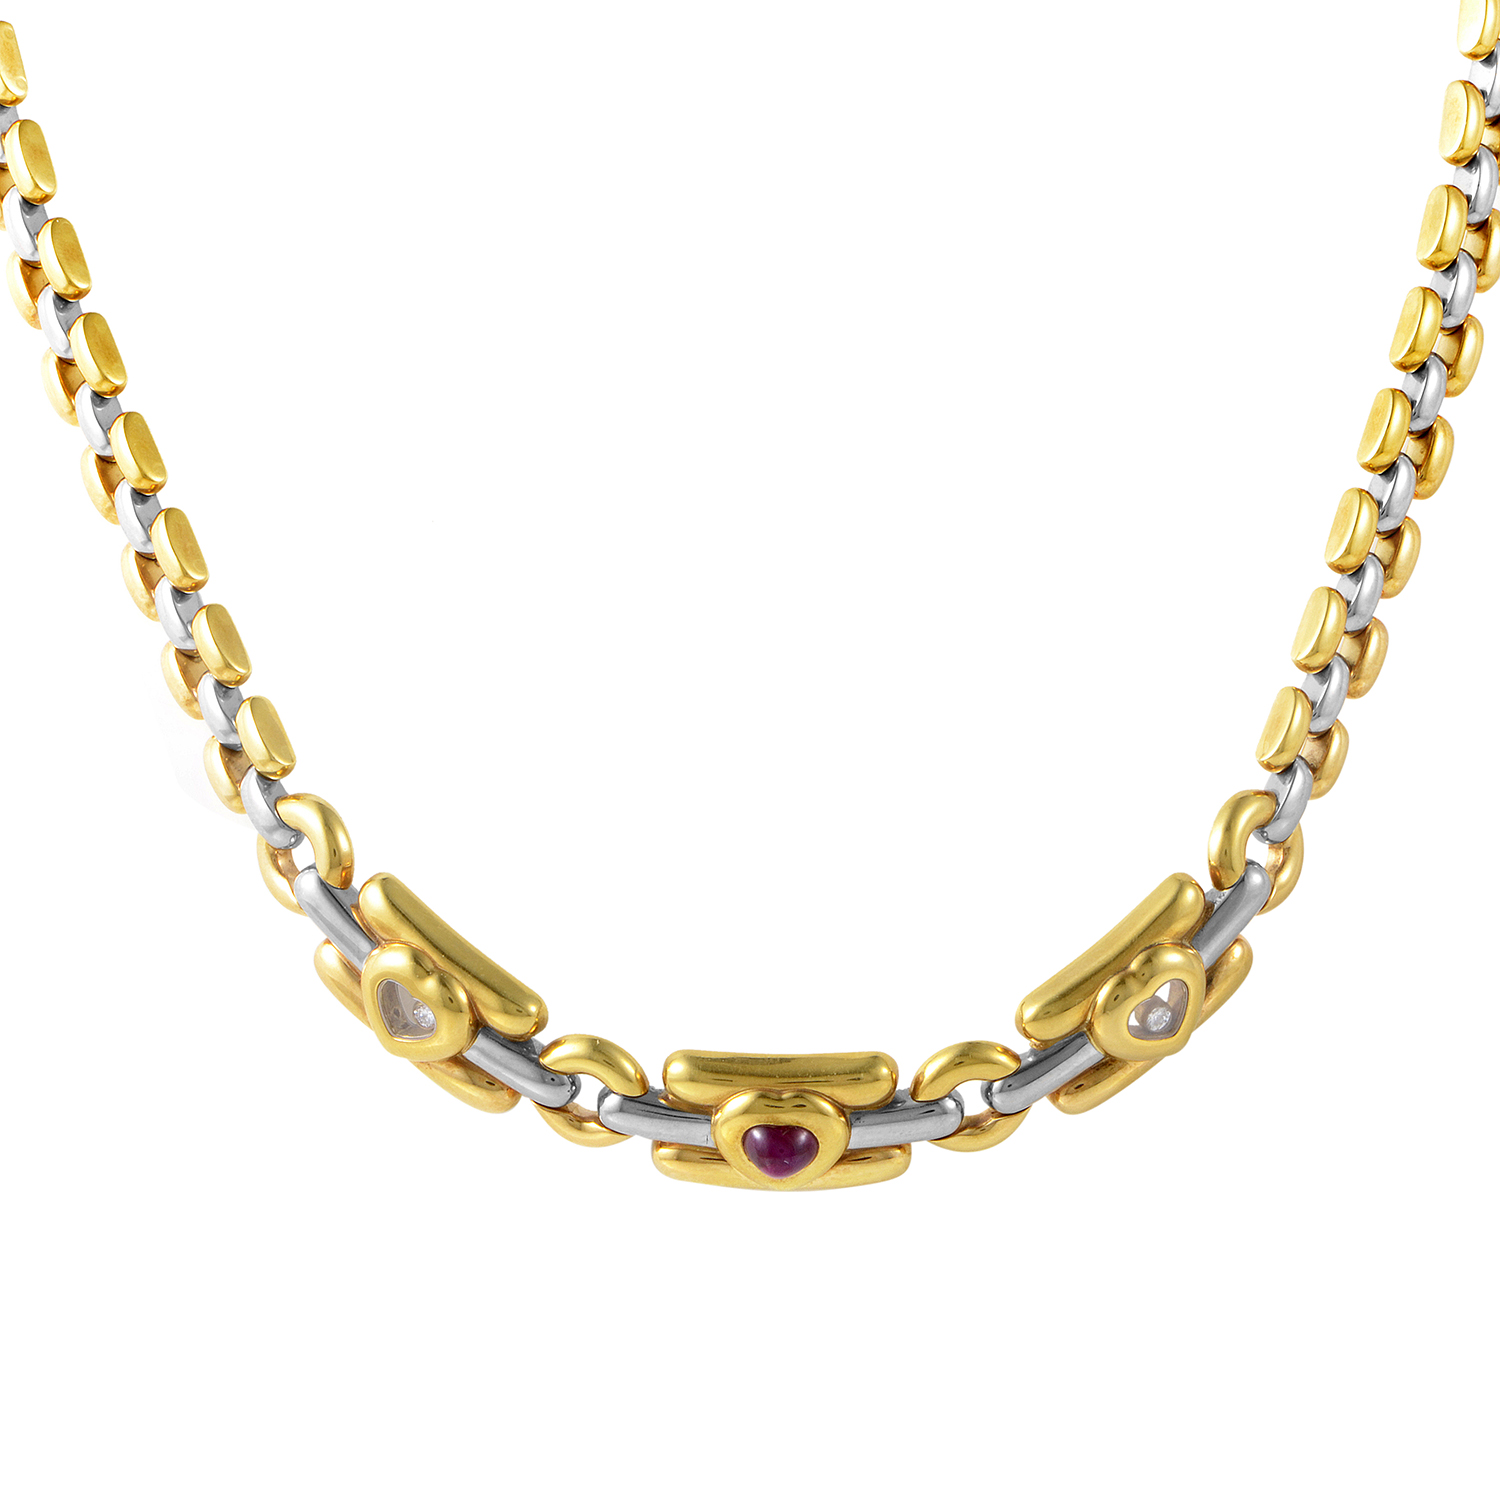 18K Multi-Tone Gold Diamond & Ruby Necklace 81/2271